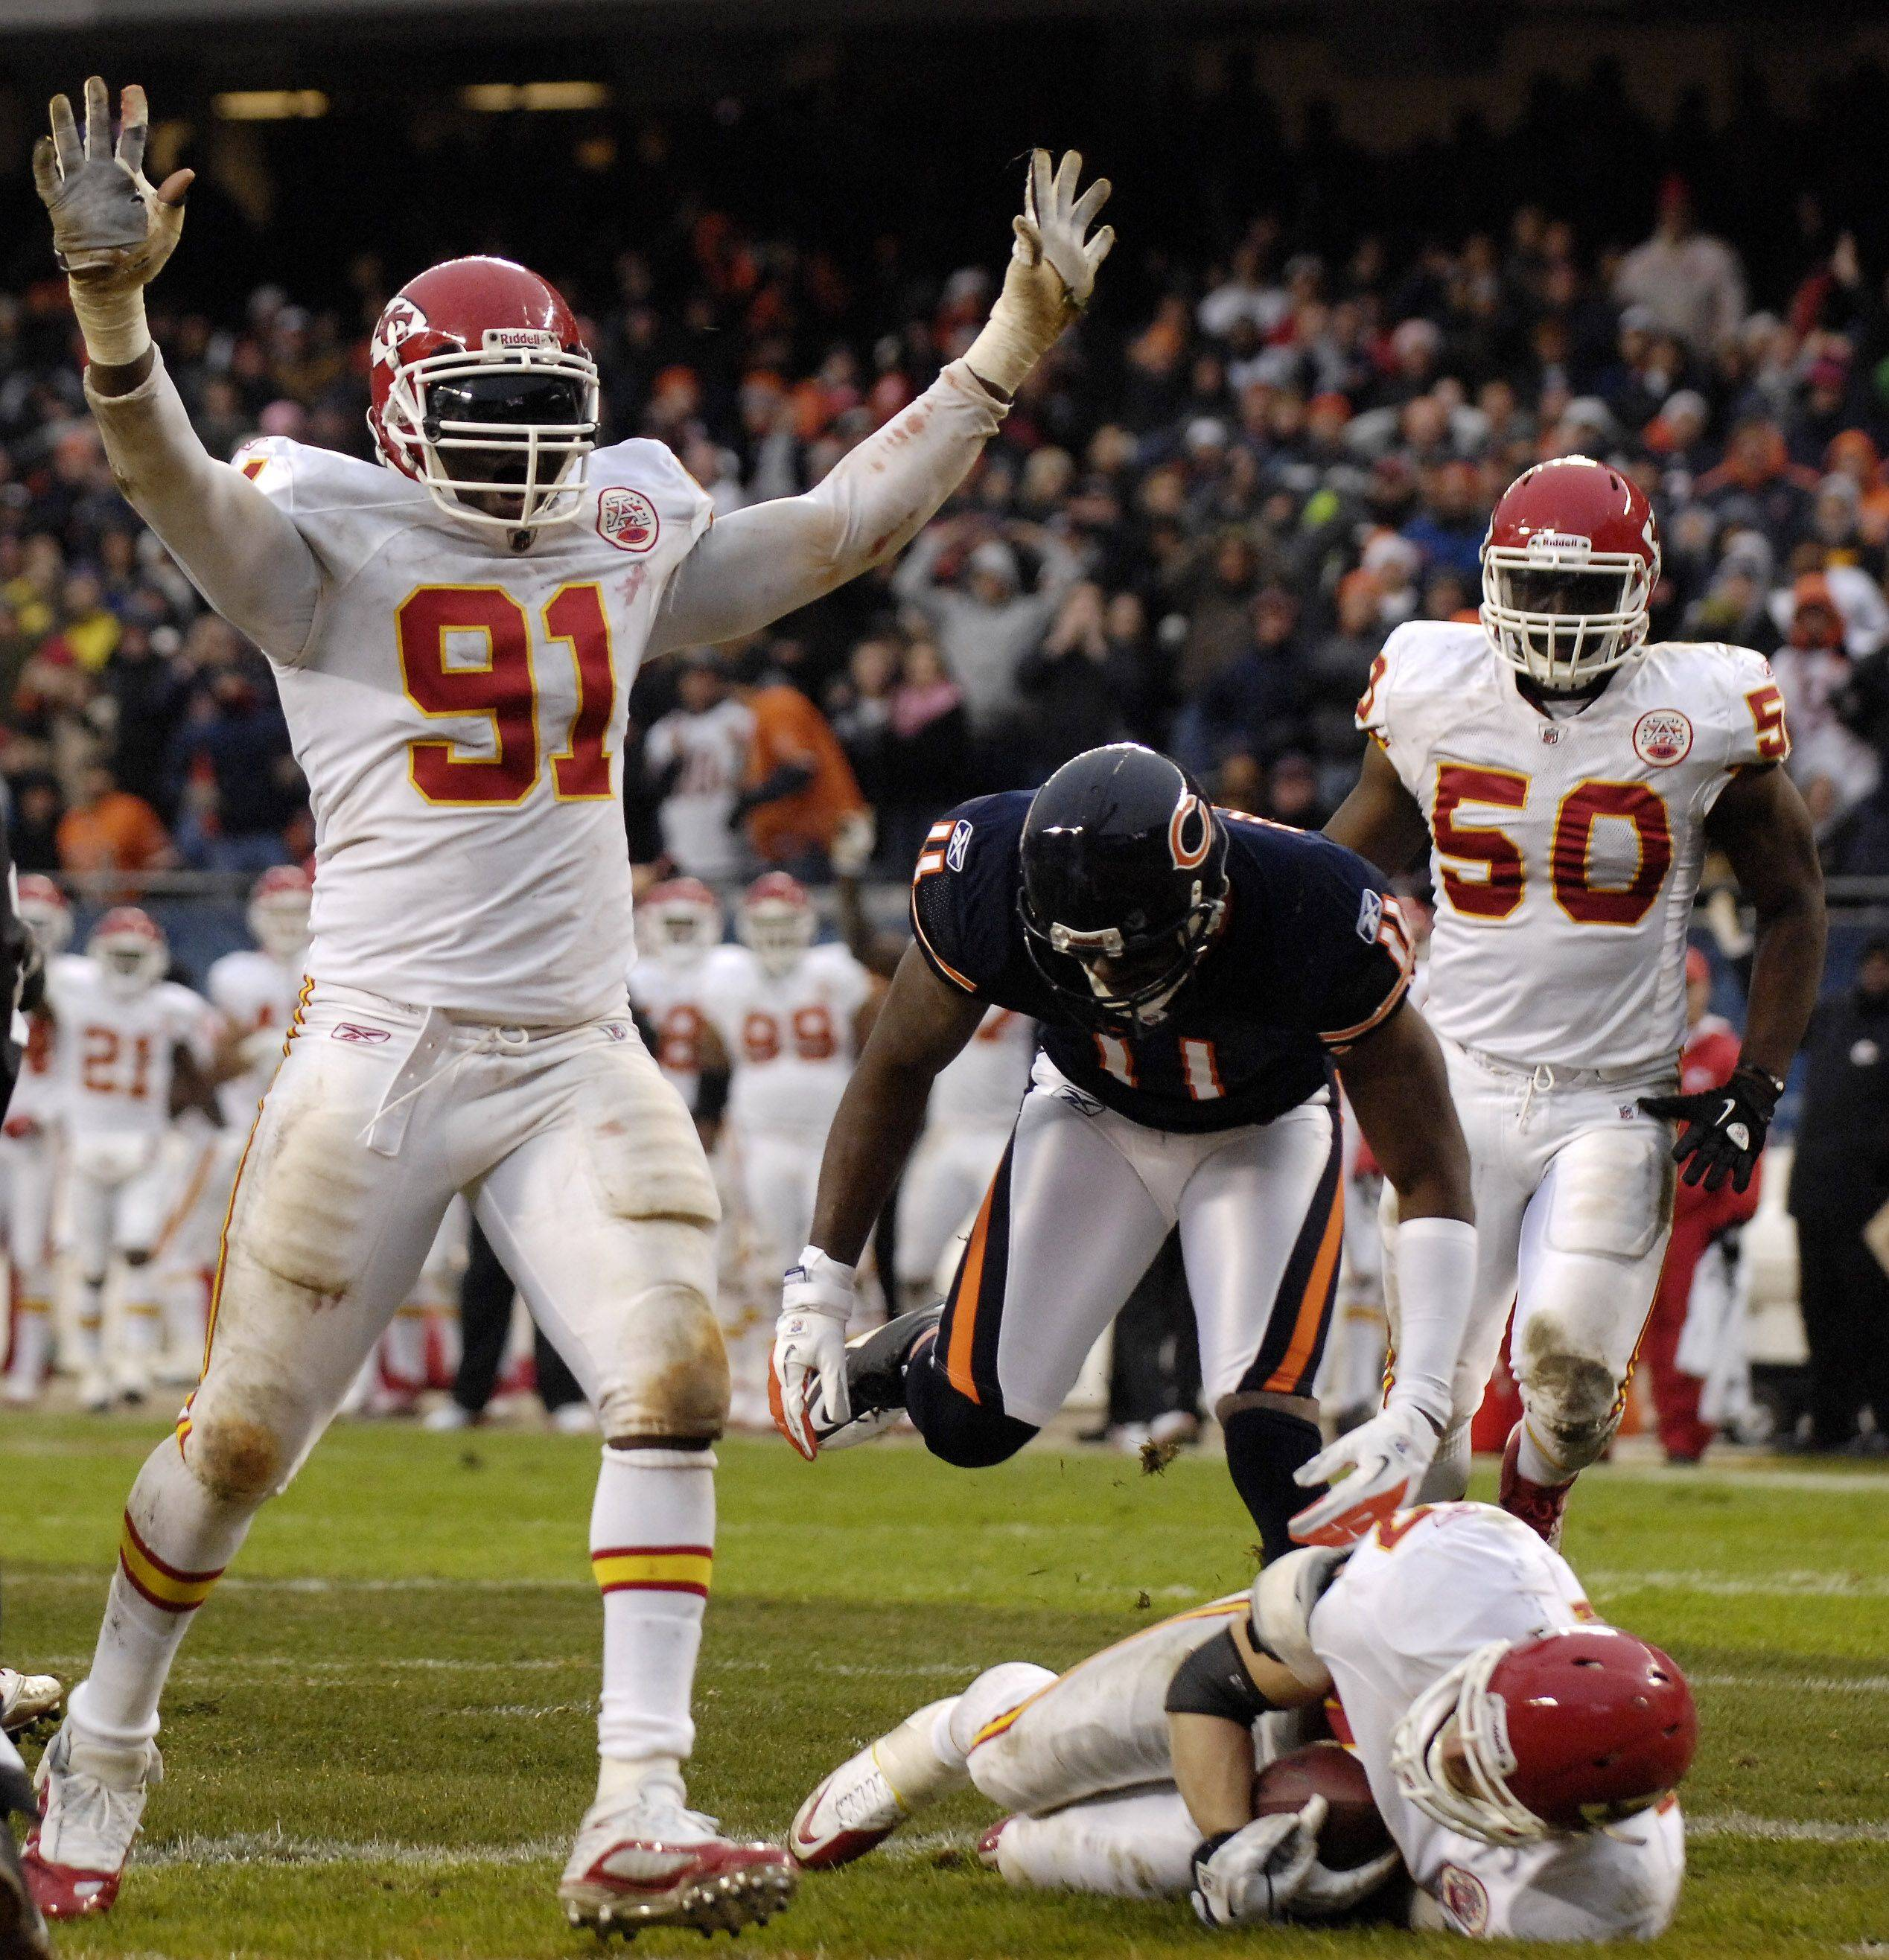 Kansas City Chiefs outside linebacker Tamba Hali (91) celebrates after teammate Jon McGraw pulled in an interception that went off the hands of Chicago Bears wide receiver Roy Williams (11) late in the fourth quarter of Sunday's game at Soldier Field in Chicago.